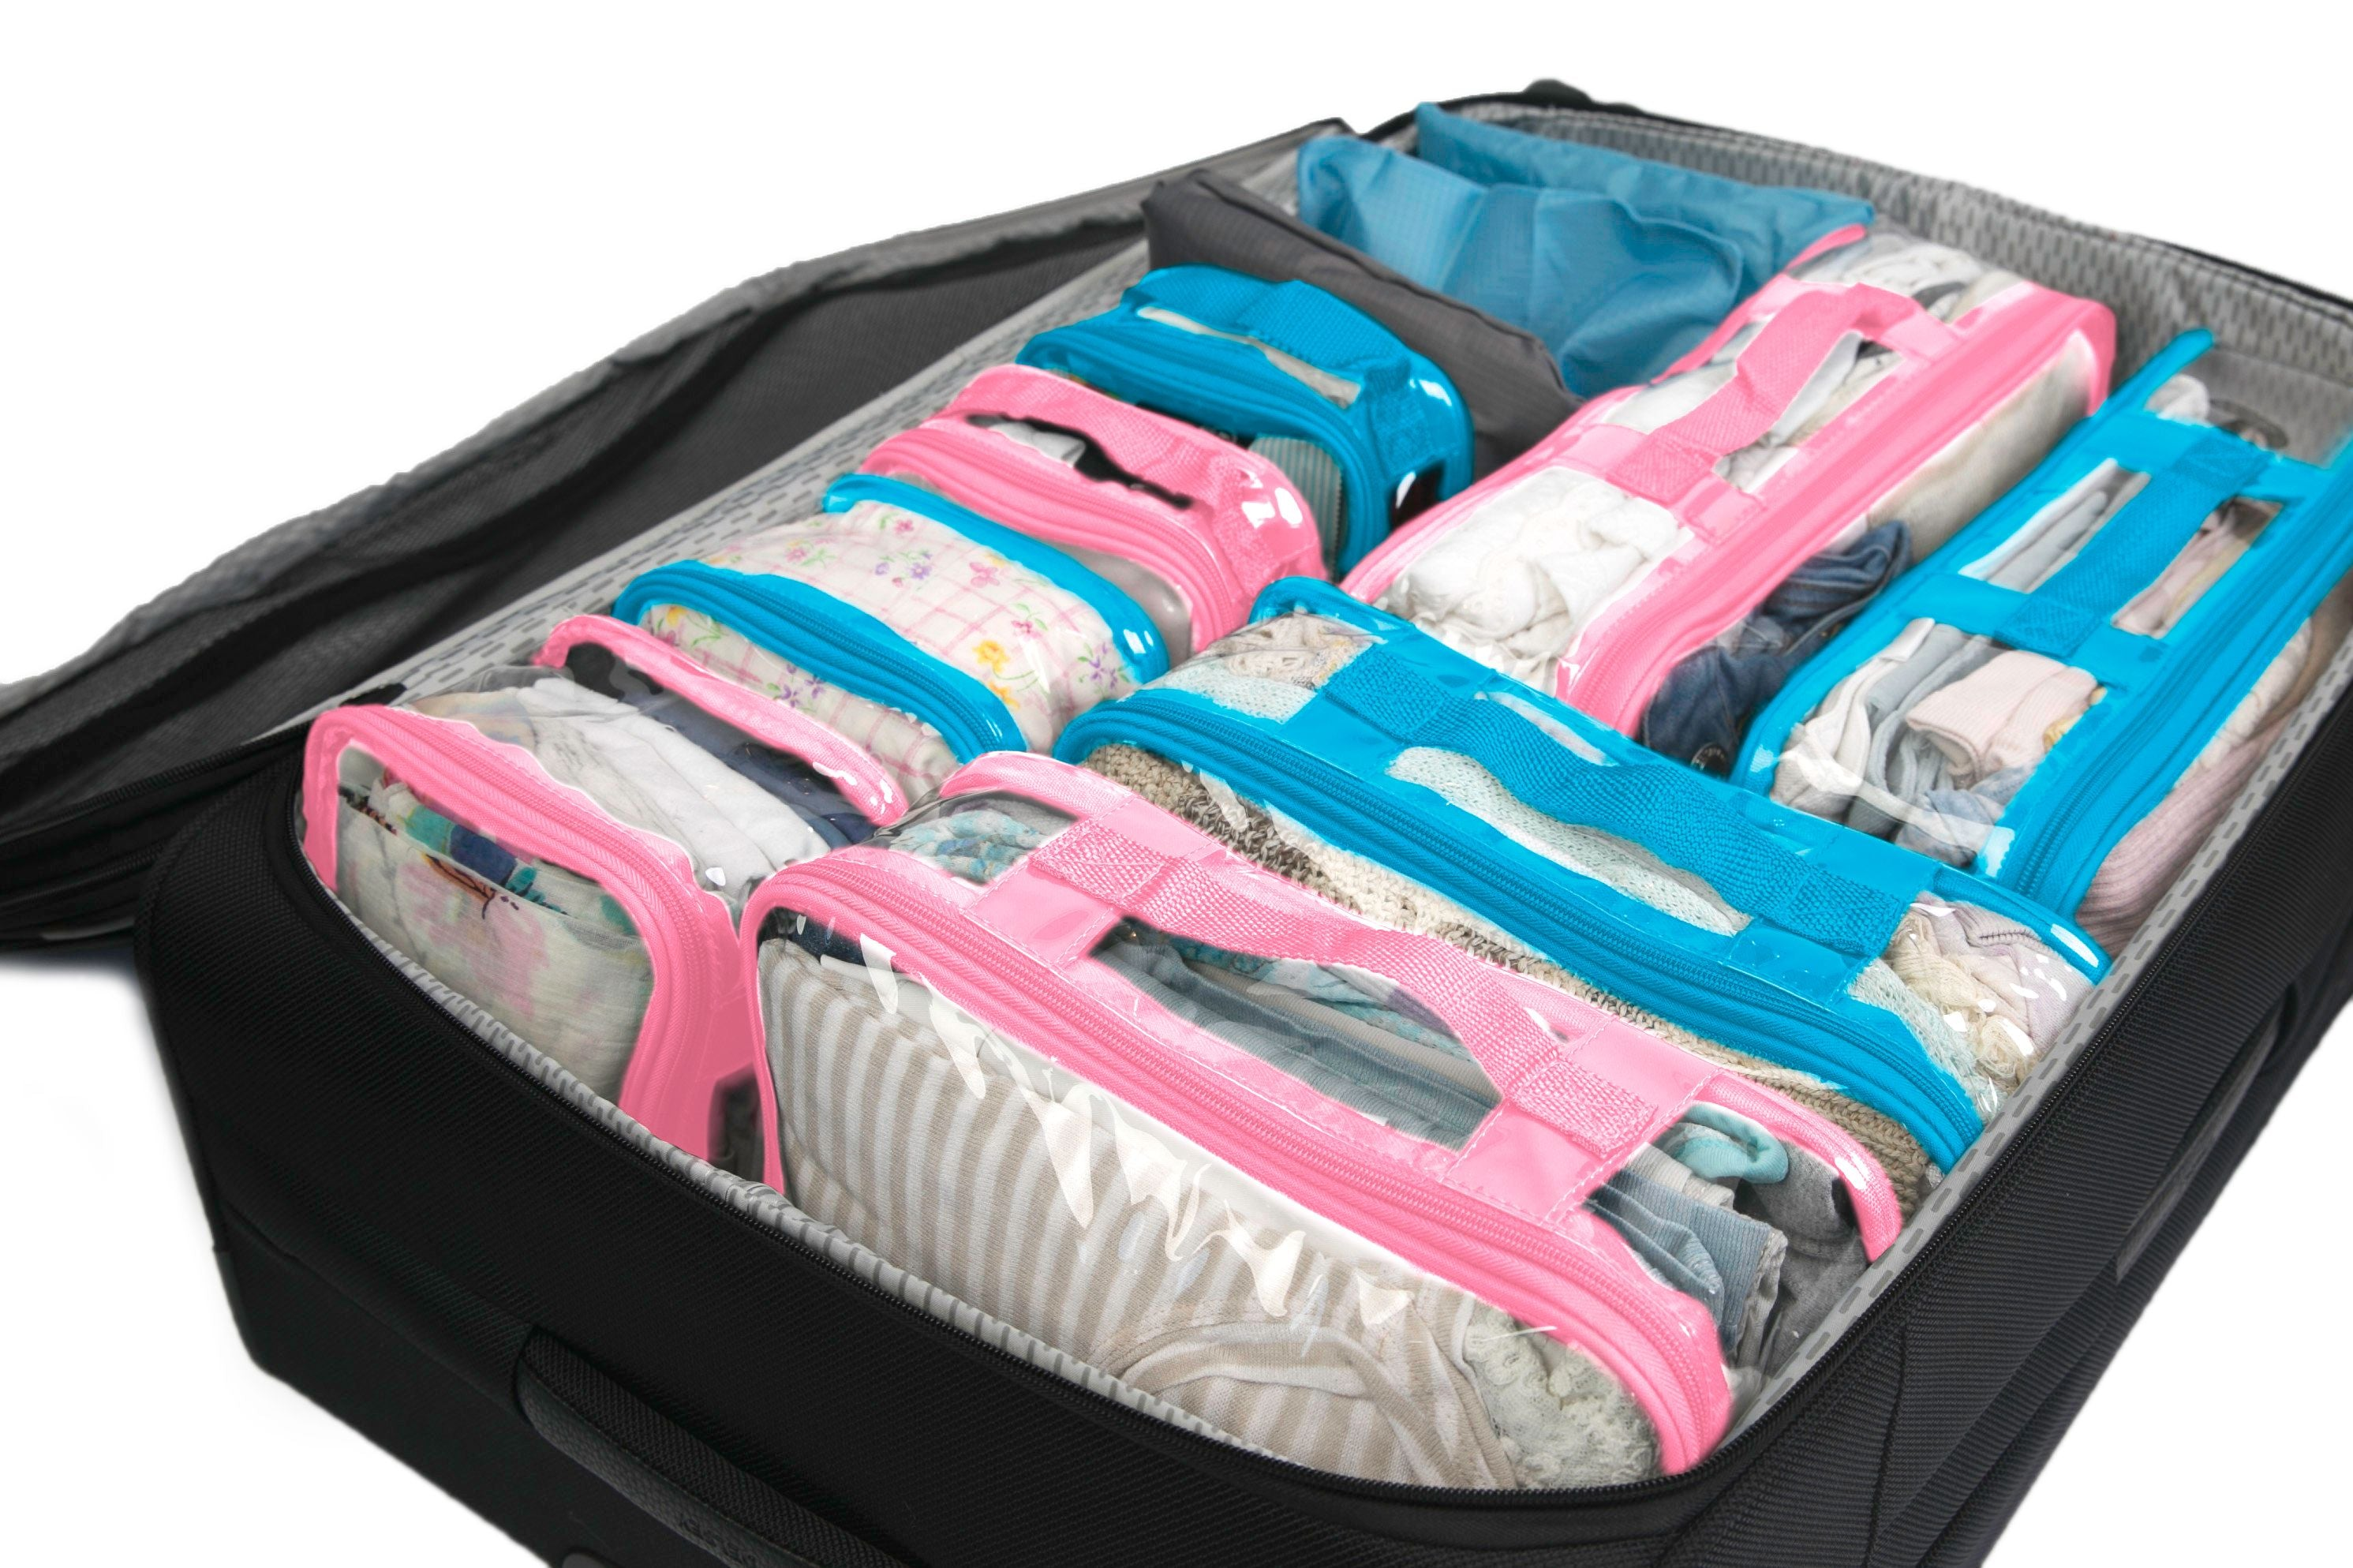 Packing organizers for travel